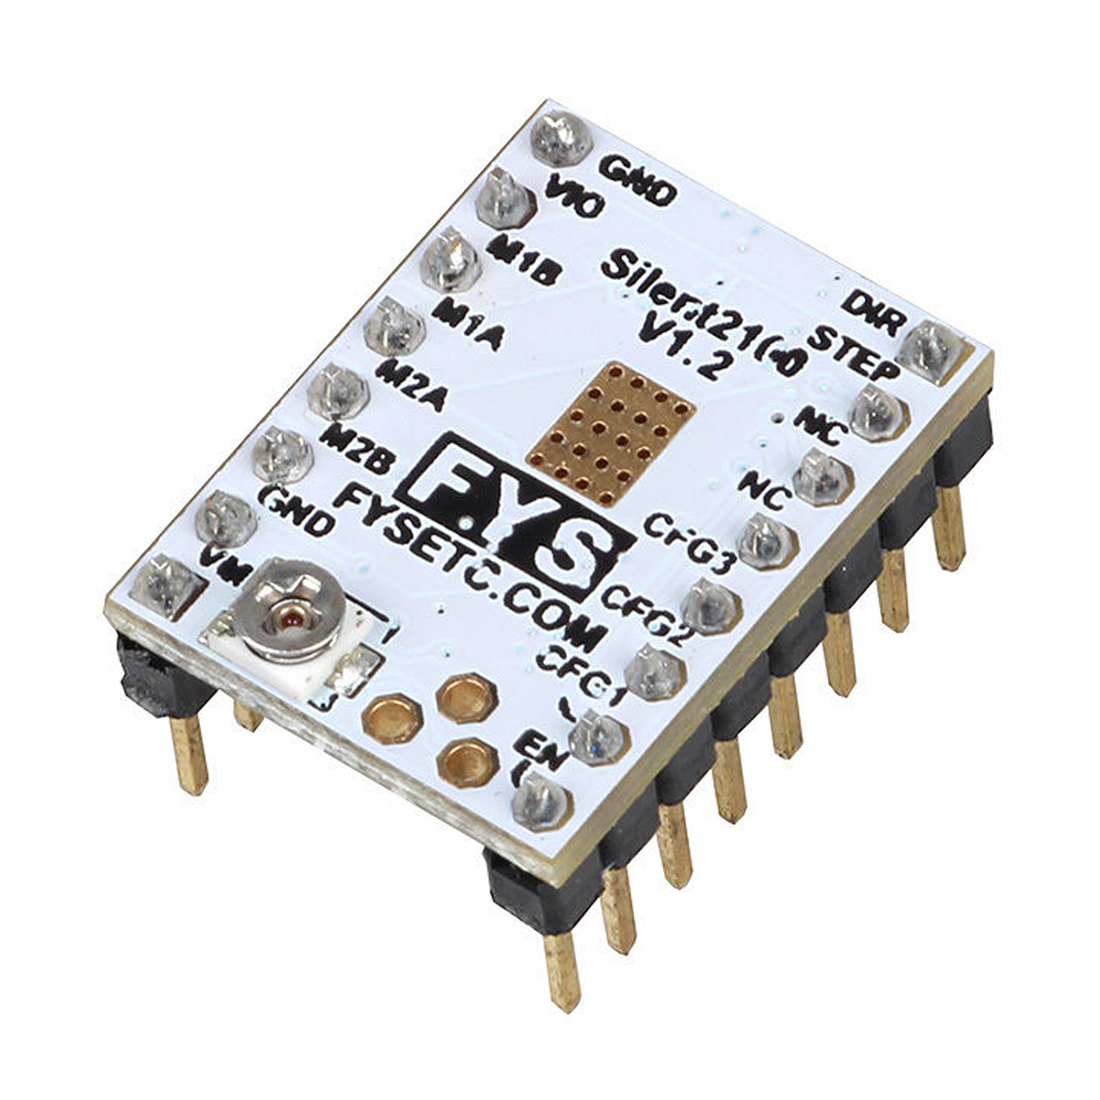 цена на 3D Printer Motor Drive for Anycubic TMC2100 Stepper Motor Driver with free Heat Sink WHITE-SCLL